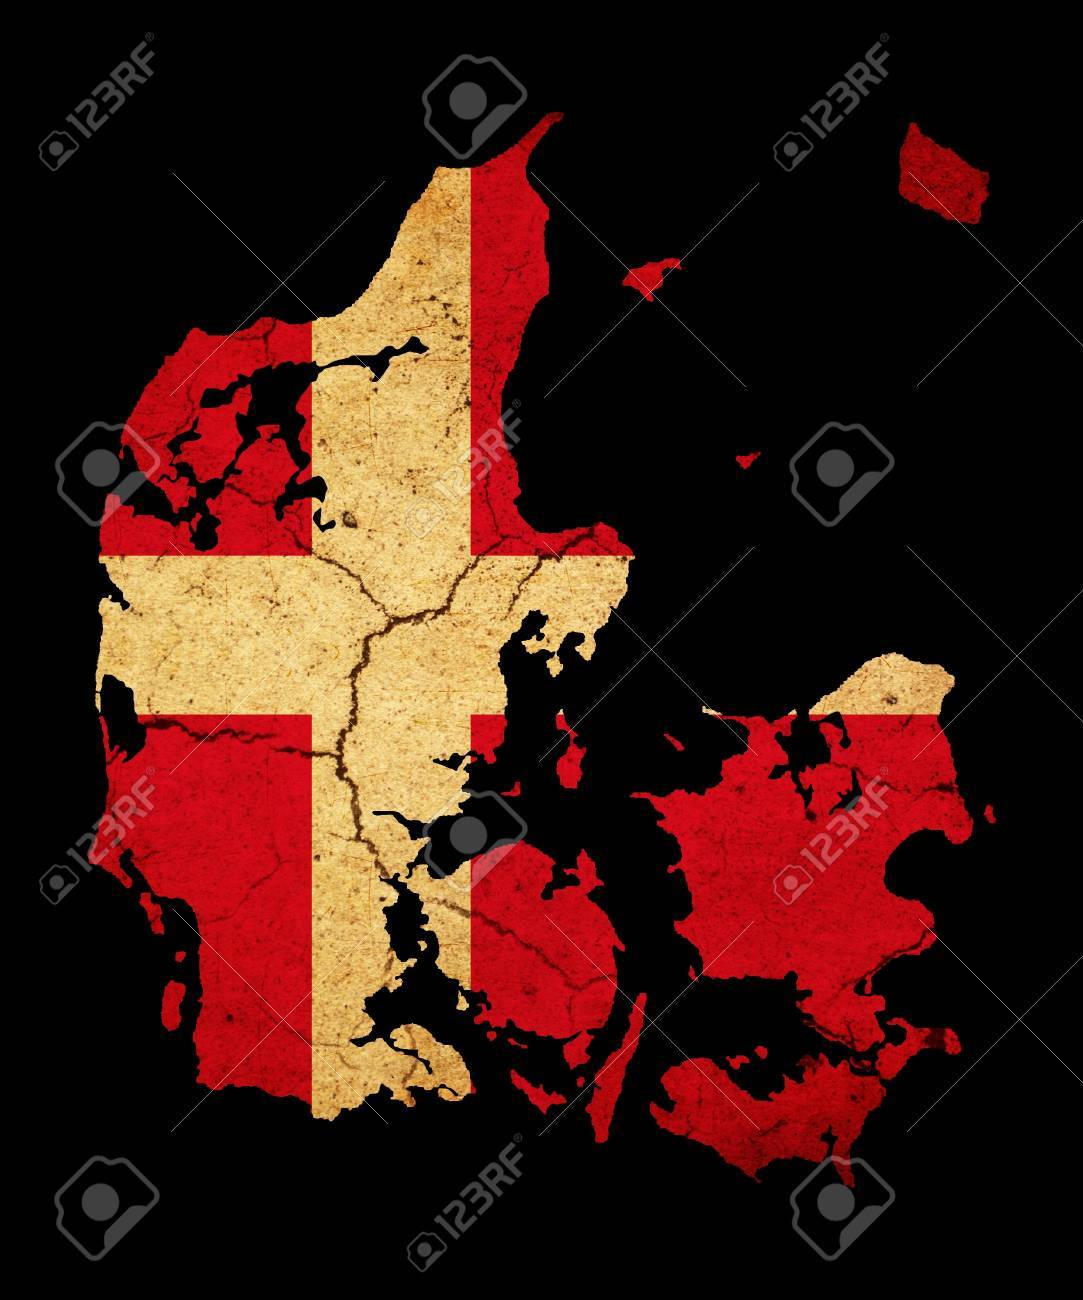 Map outline of Denmark with flag insert grunge effect Stock Photo - 12651379